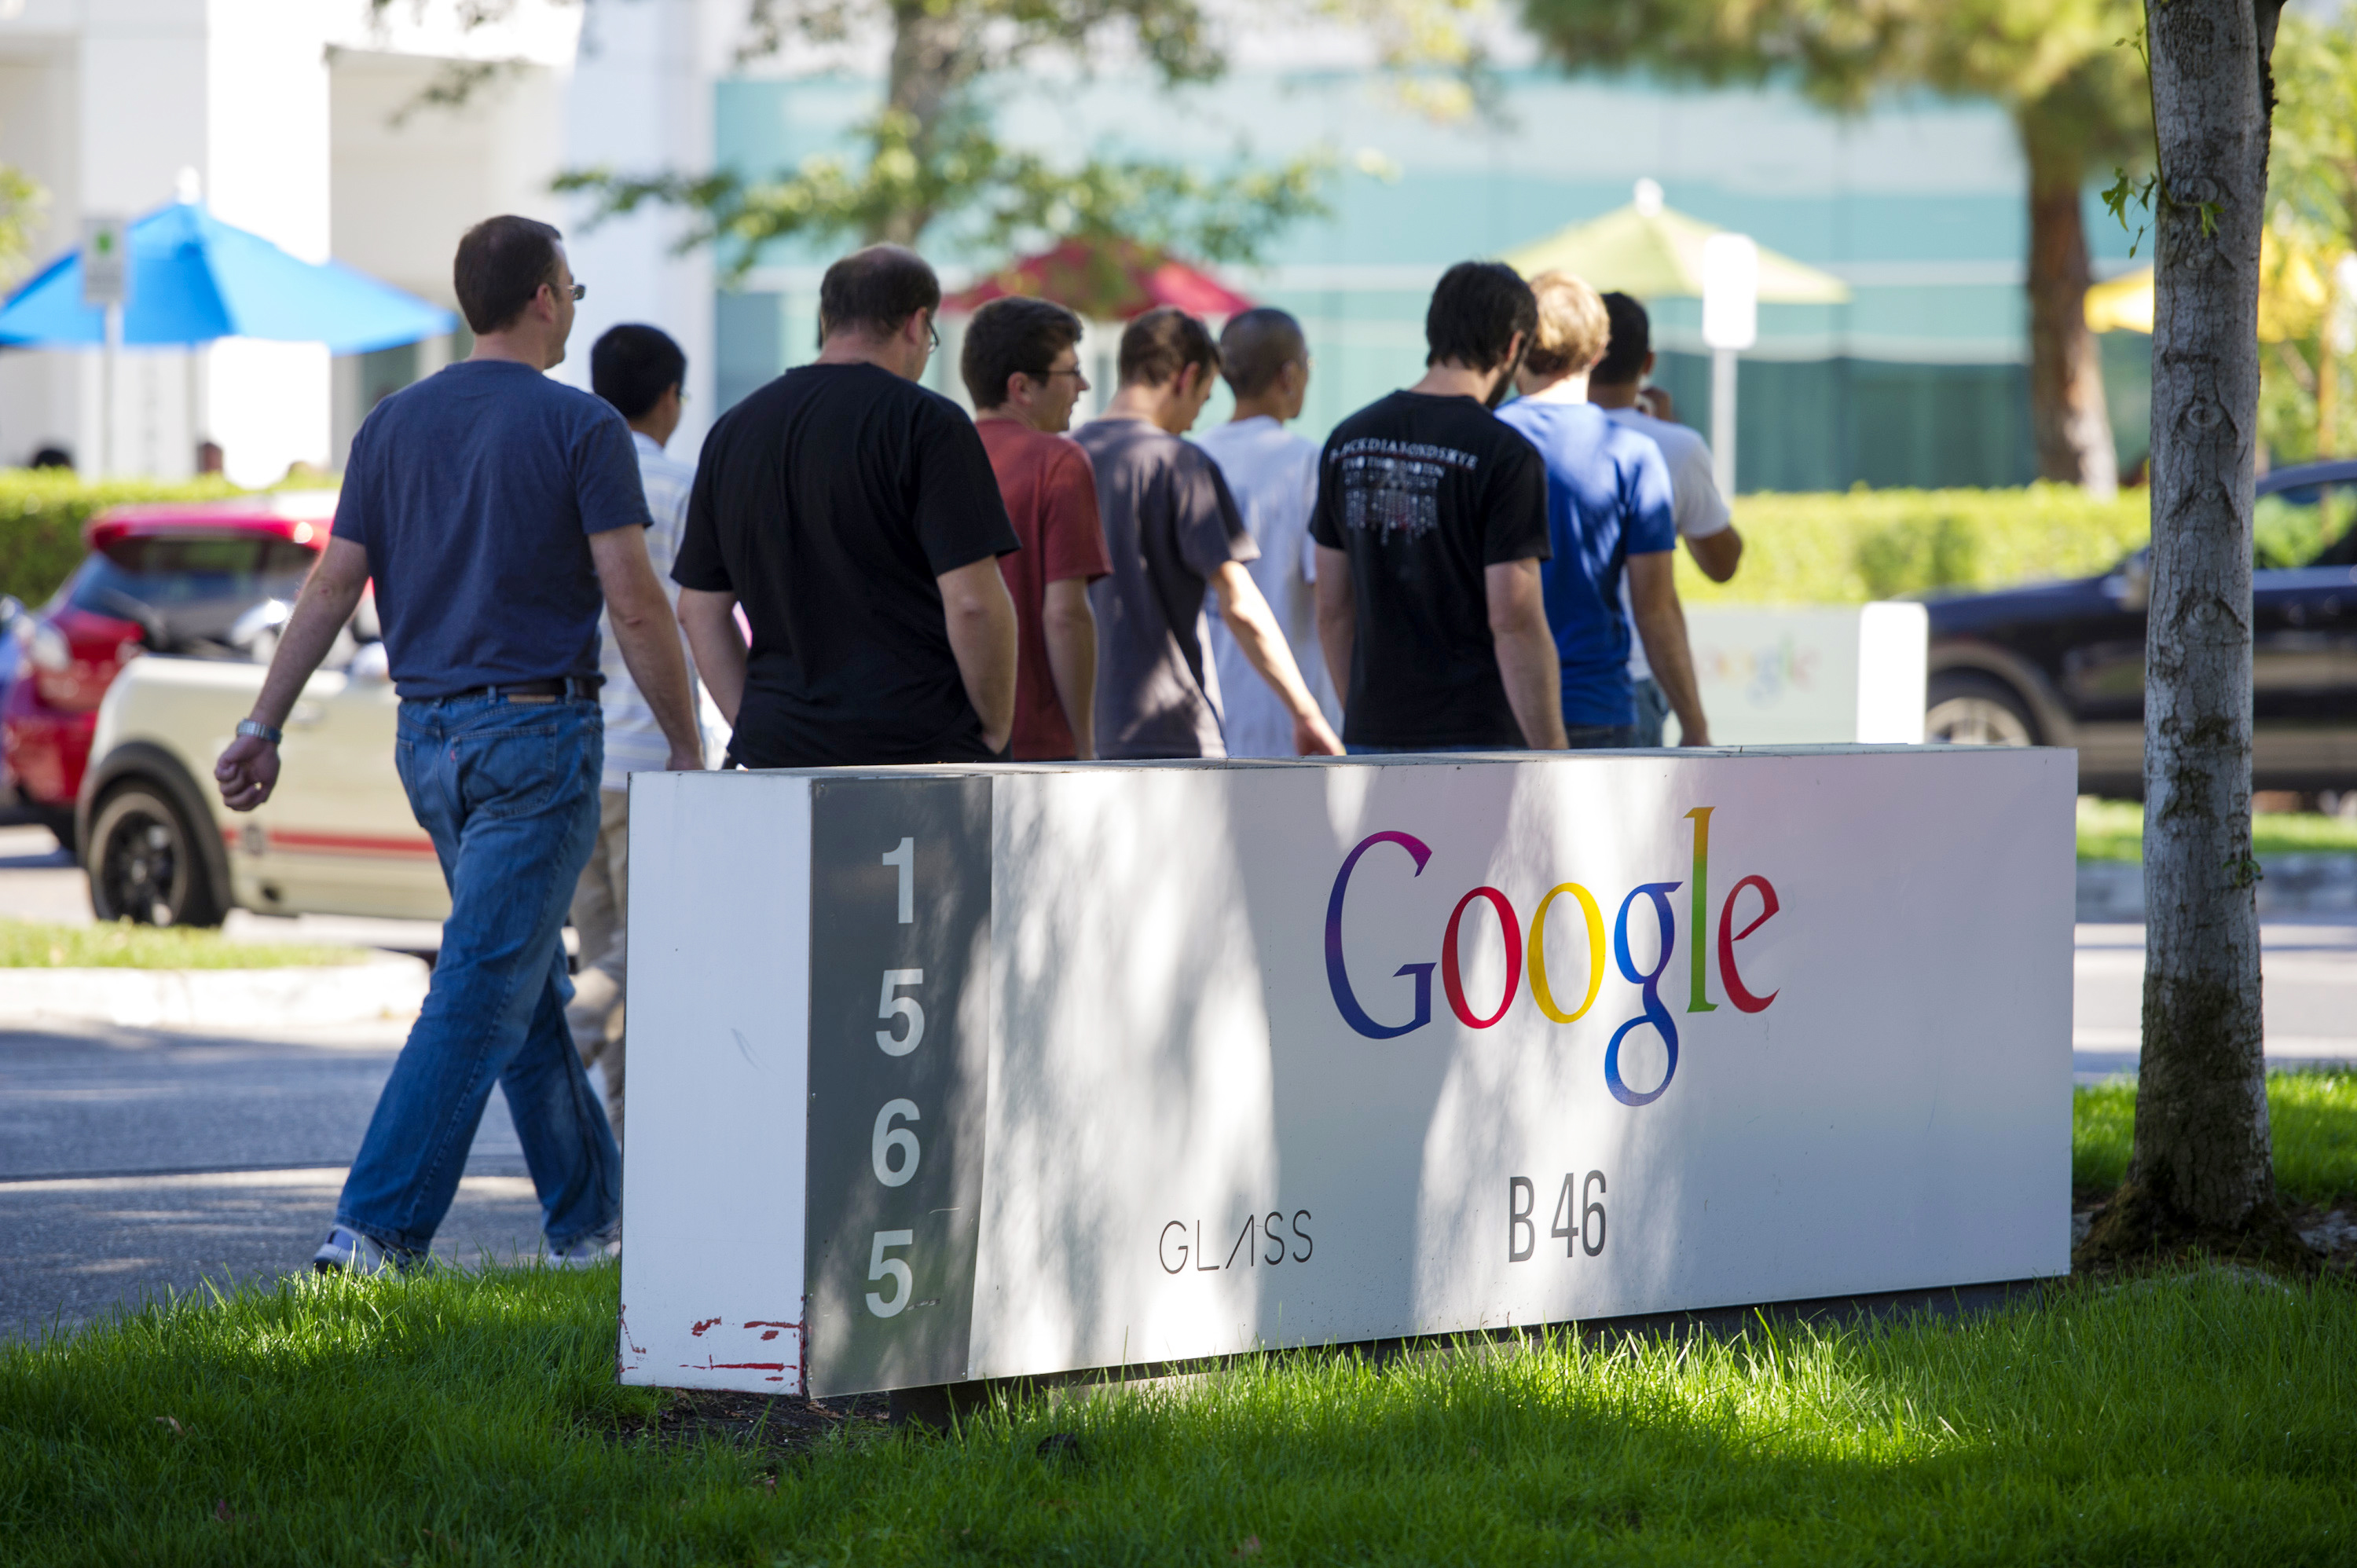 Pedestrians walk past Google Inc. signage displayed in front of the company's headquarters in Mountain View, Calif. on Sept. 27, 2013.